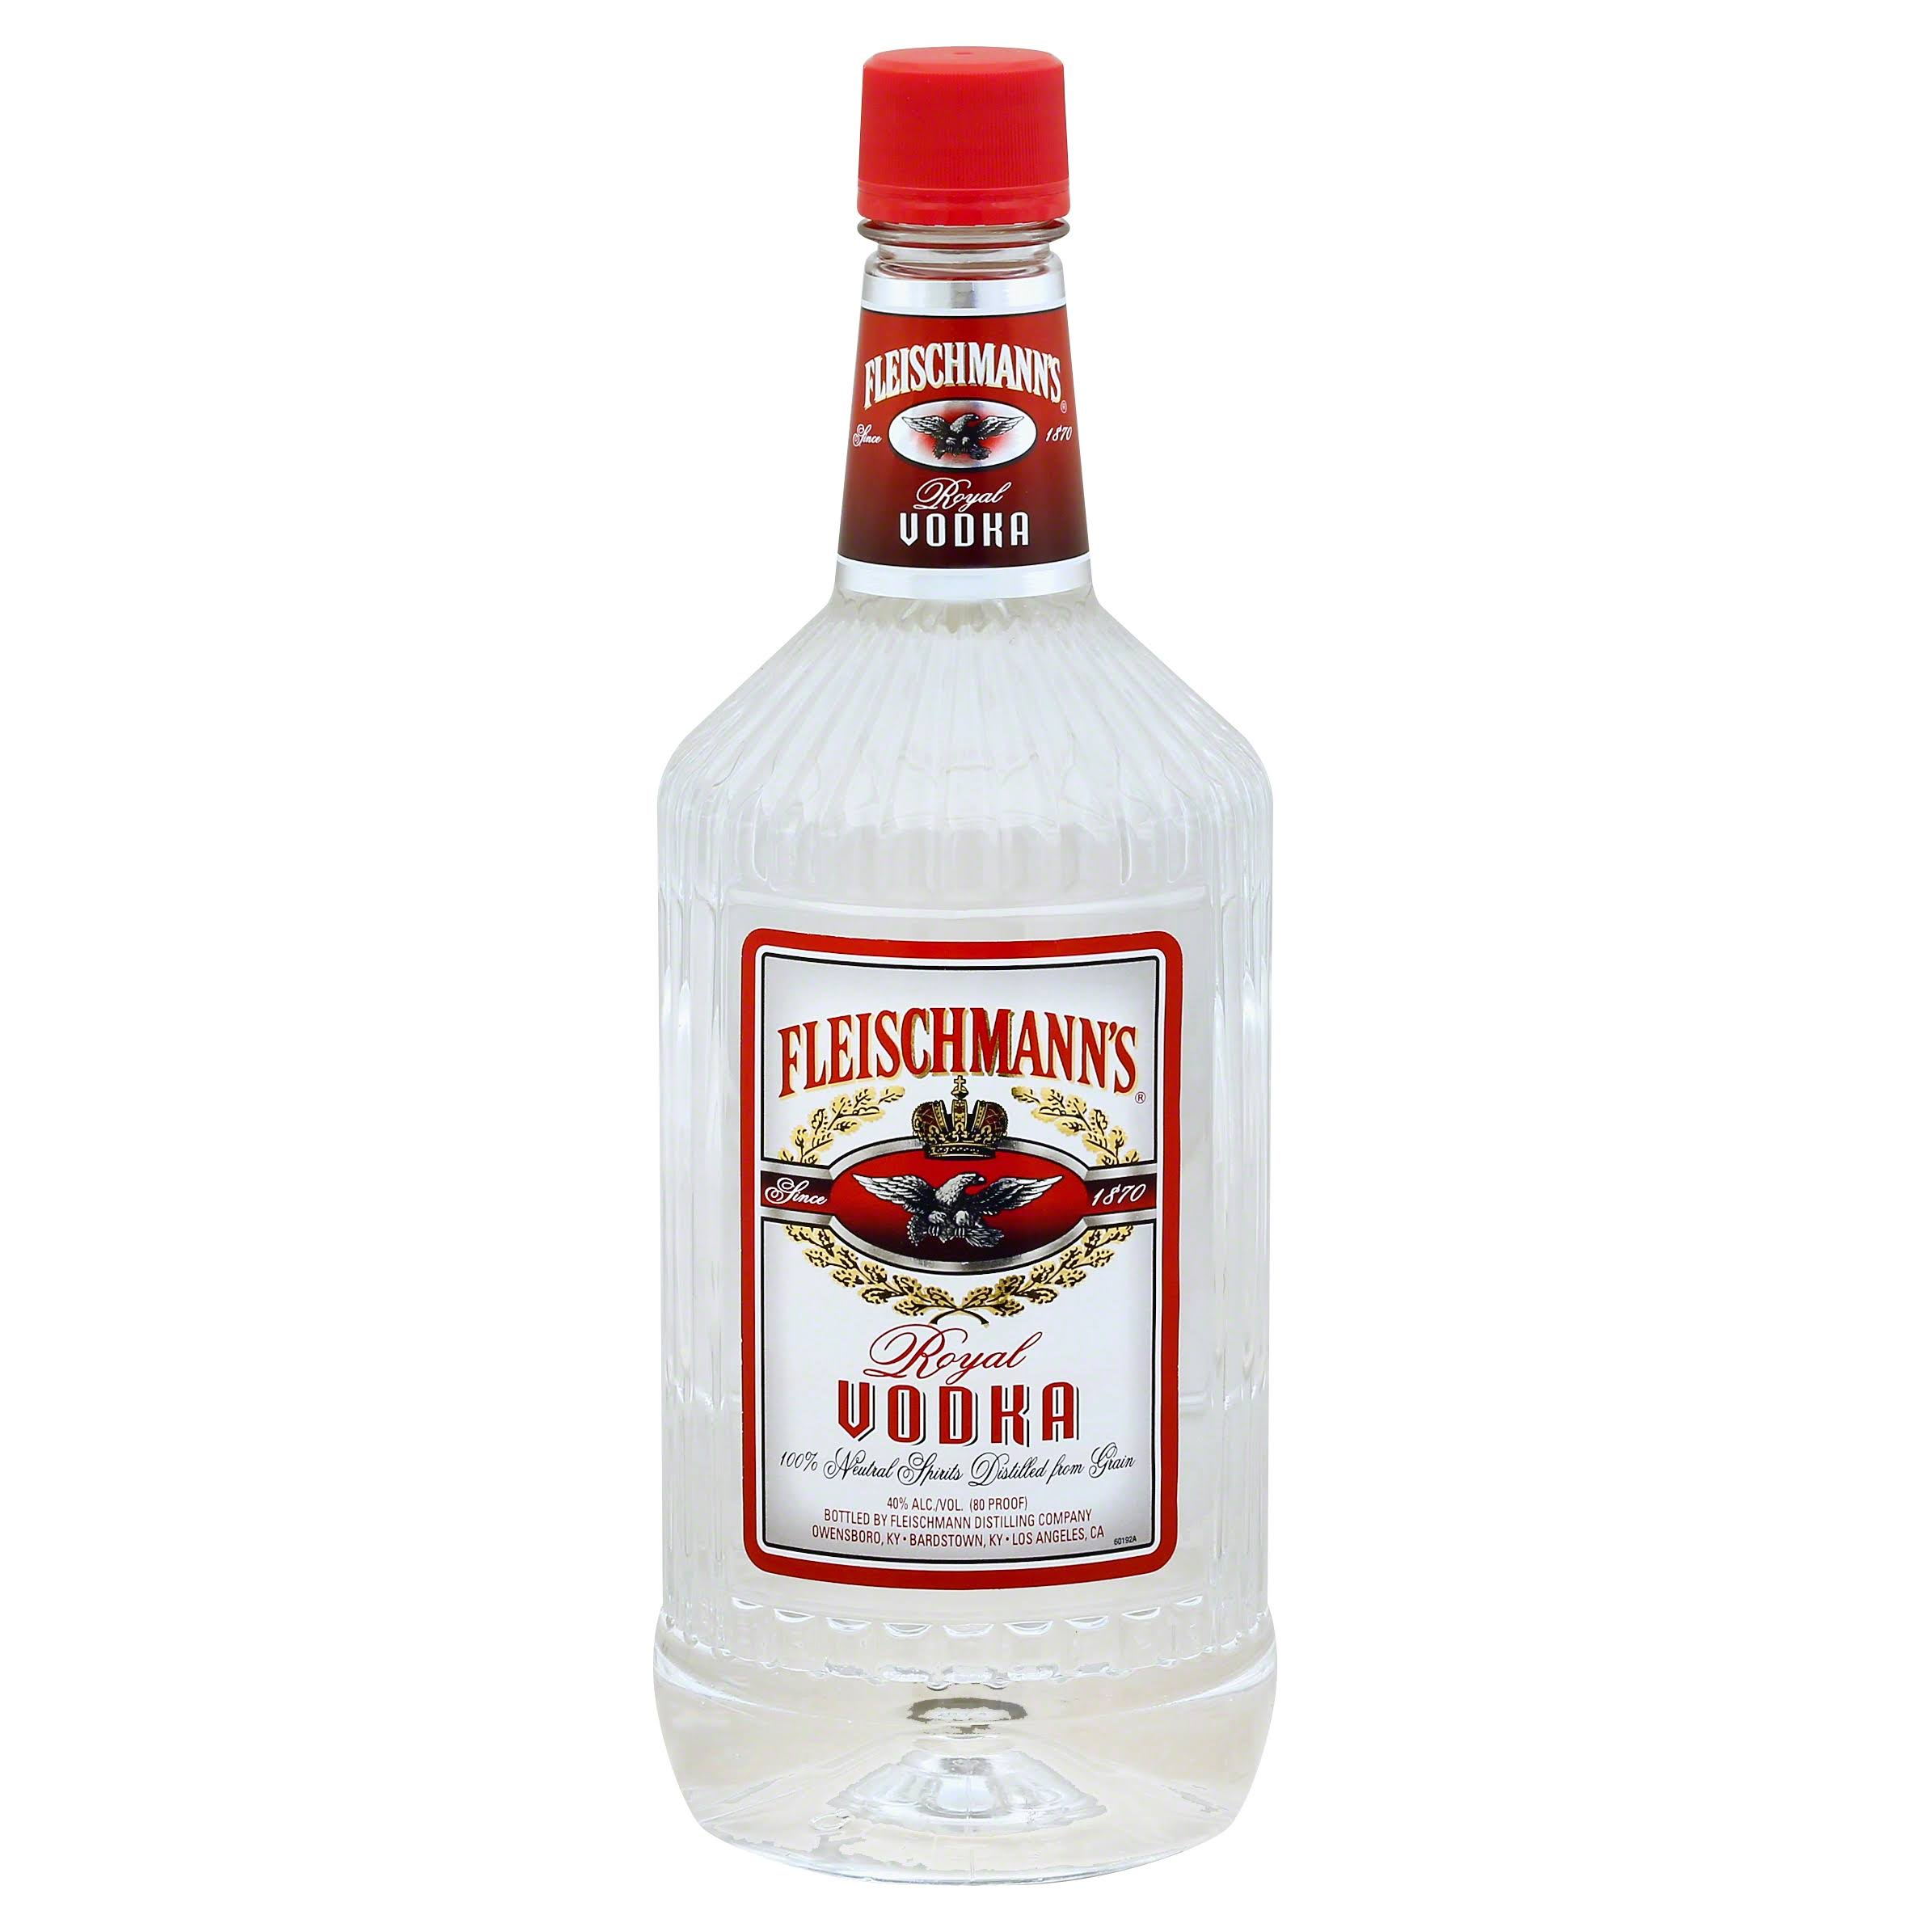 Fleischmann's Royal Vodka - 1.75L, USA